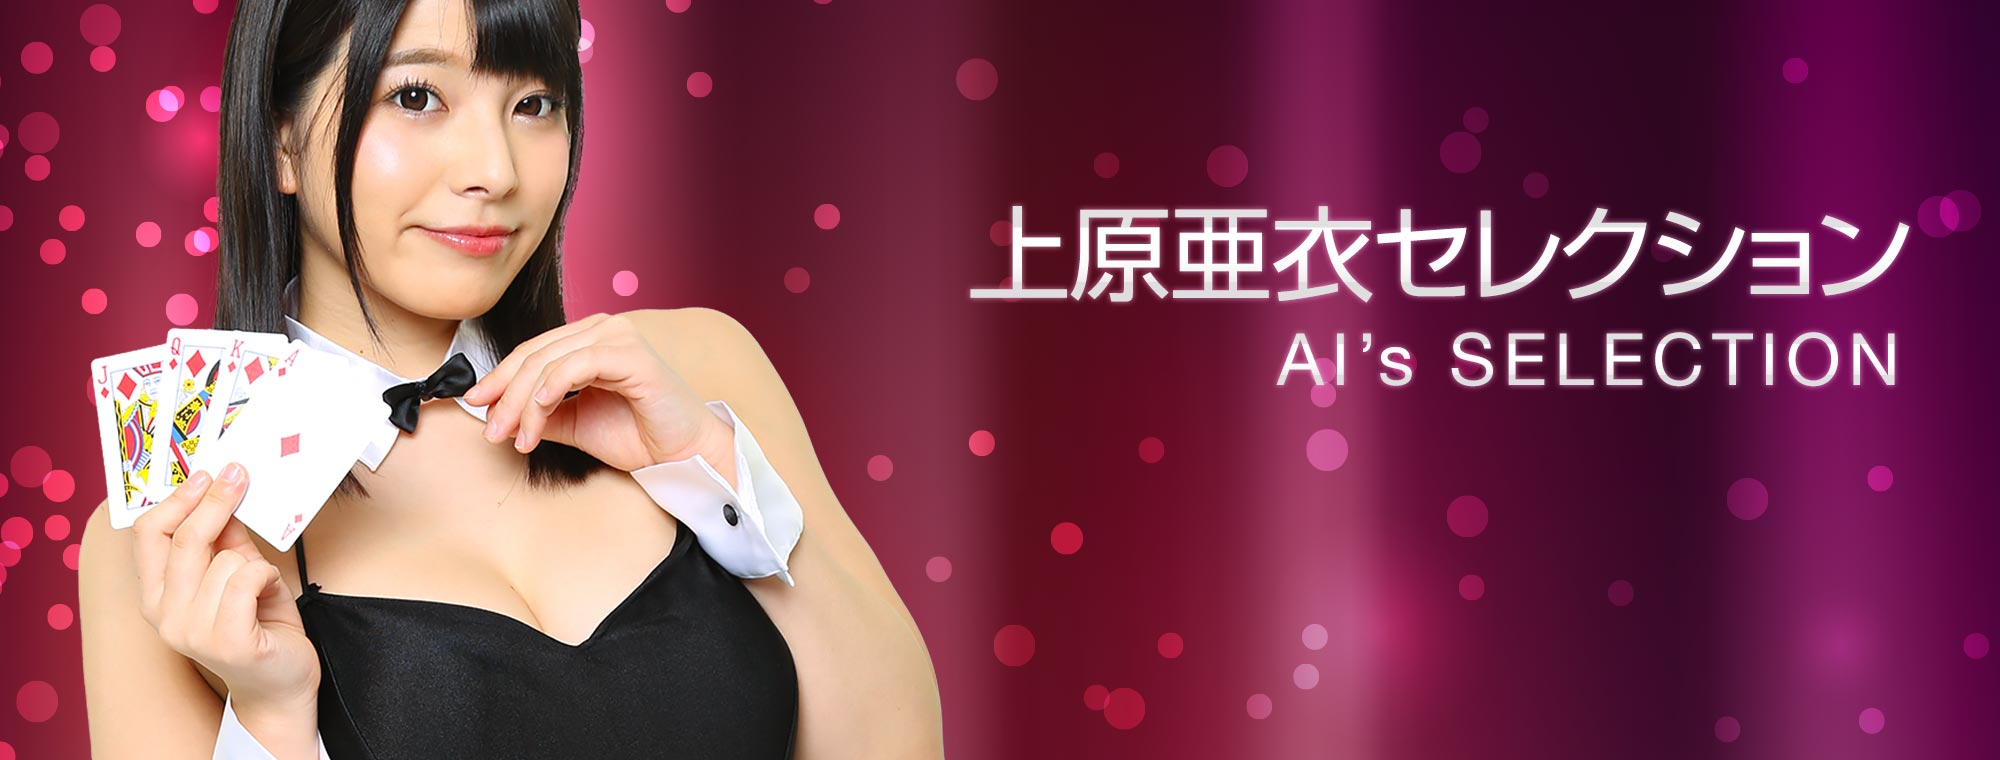 Banner Front AI-Favourite